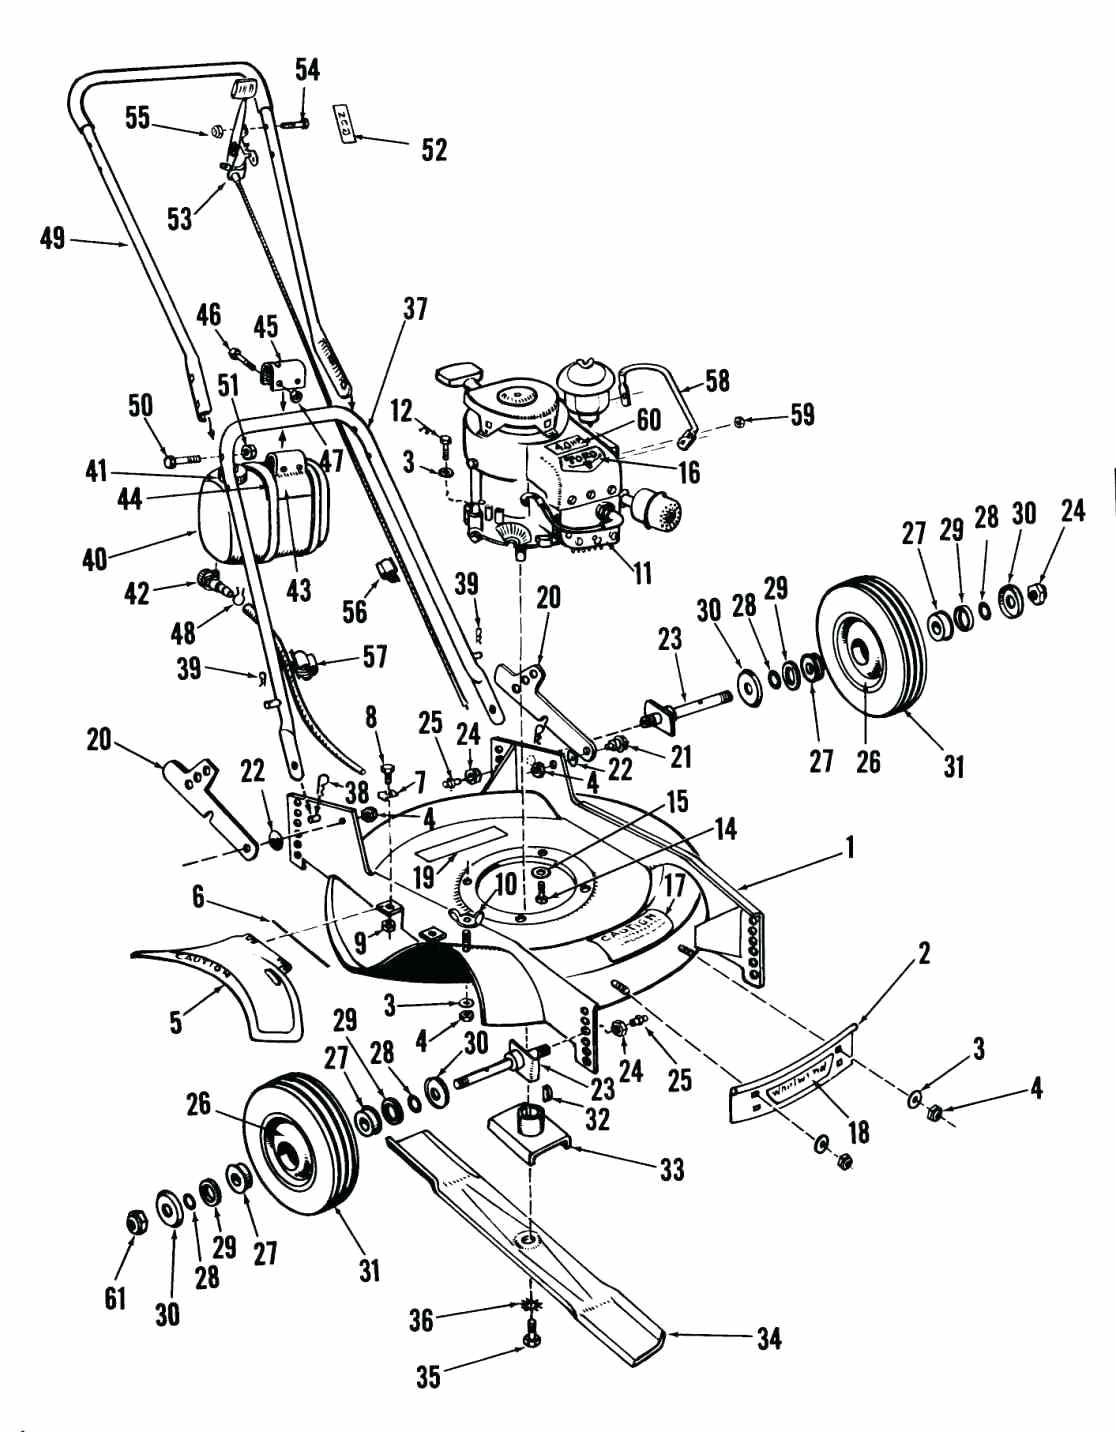 Lawn mower drawing at getdrawings free for personal use lawn lawn mower drawing 33 lawn mower drawing honda g100 engine parts diagram